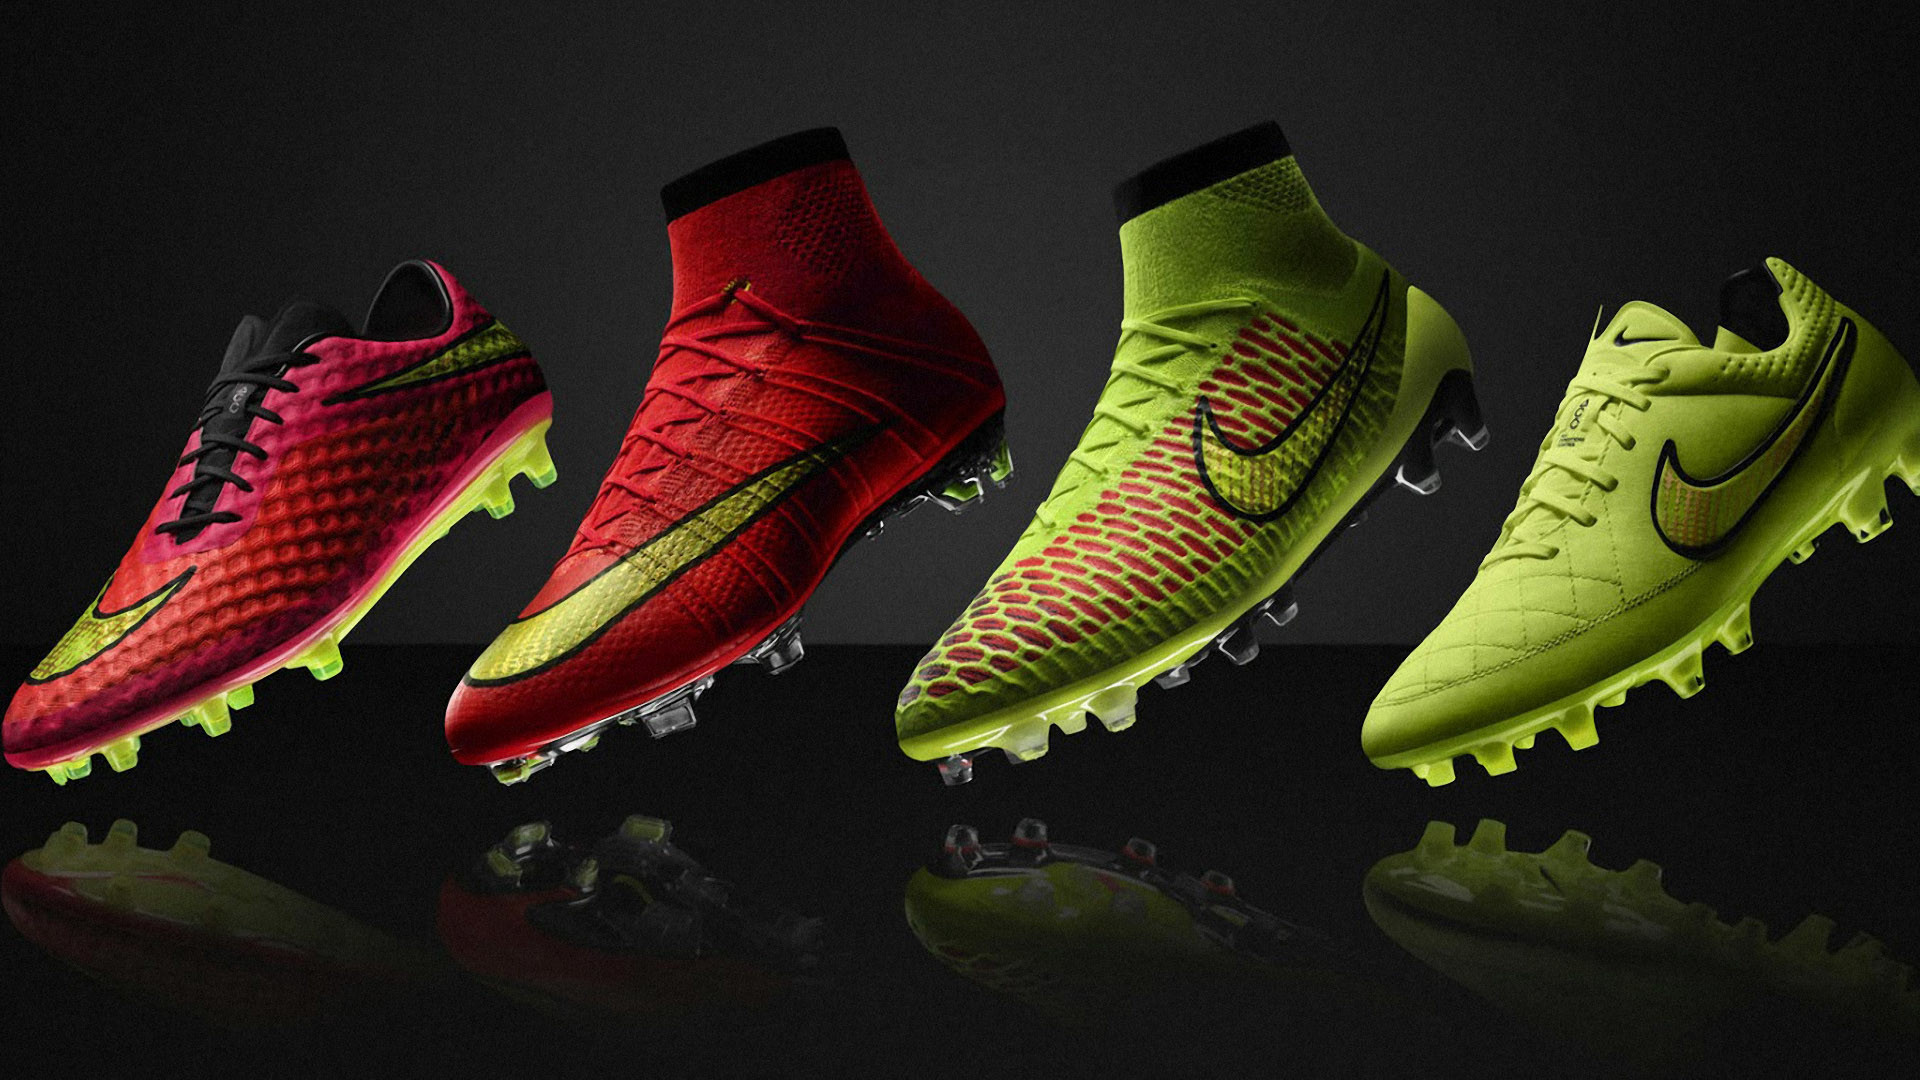 Nike Soccer HD Wallpapers – Free download latest Nike Soccer HD Wallpapers  for Computer, Mobile